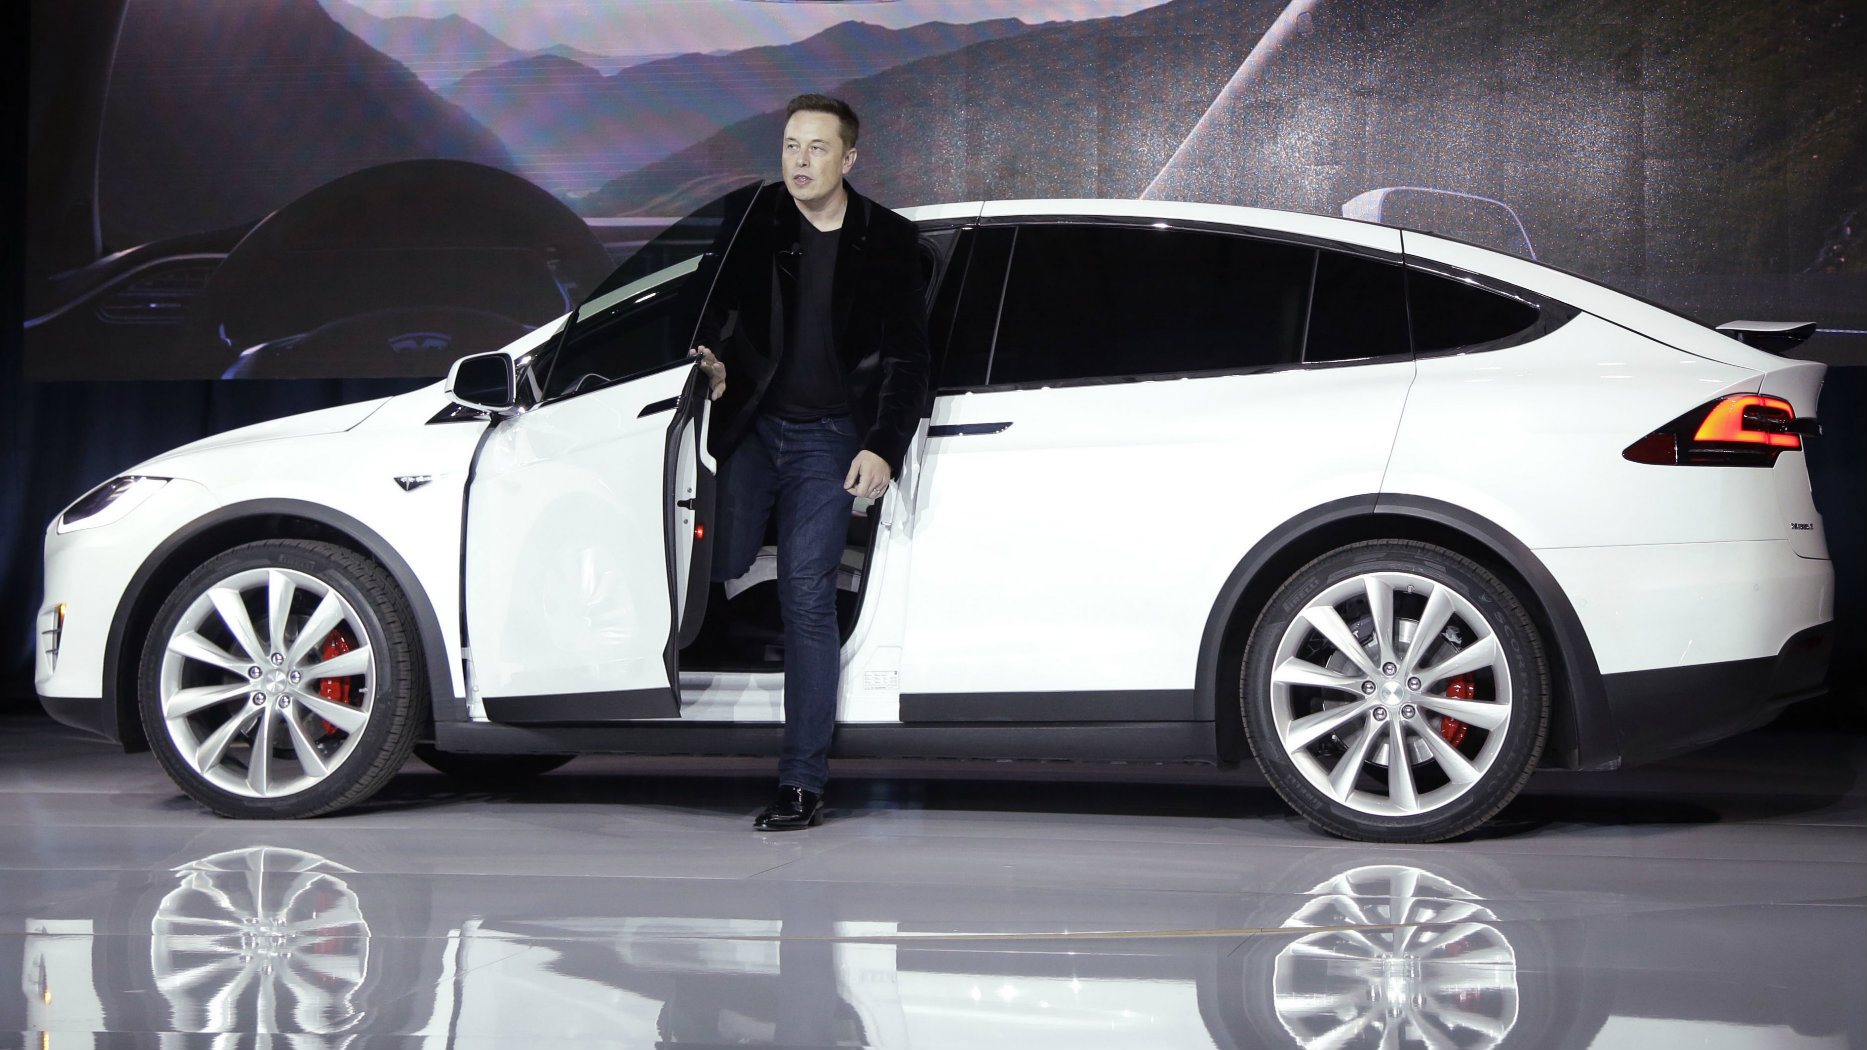 Elon Musk, CEO of Tesla Motors Inc., introduces the Model X car at the company's headquarters